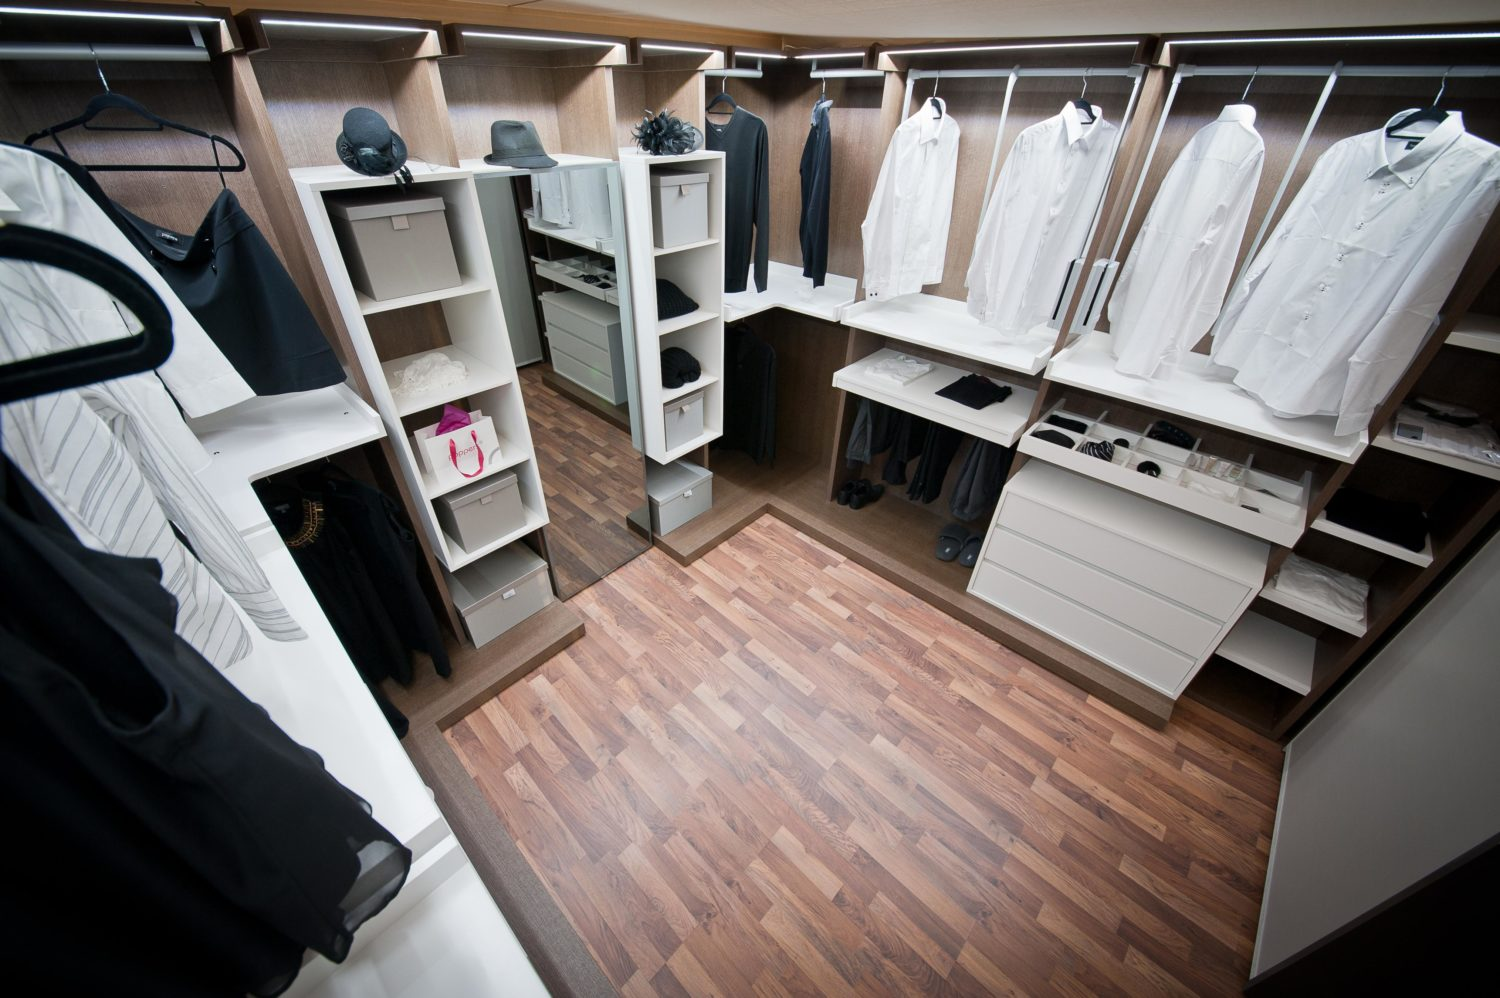 Novamobili walk-in wardrobe